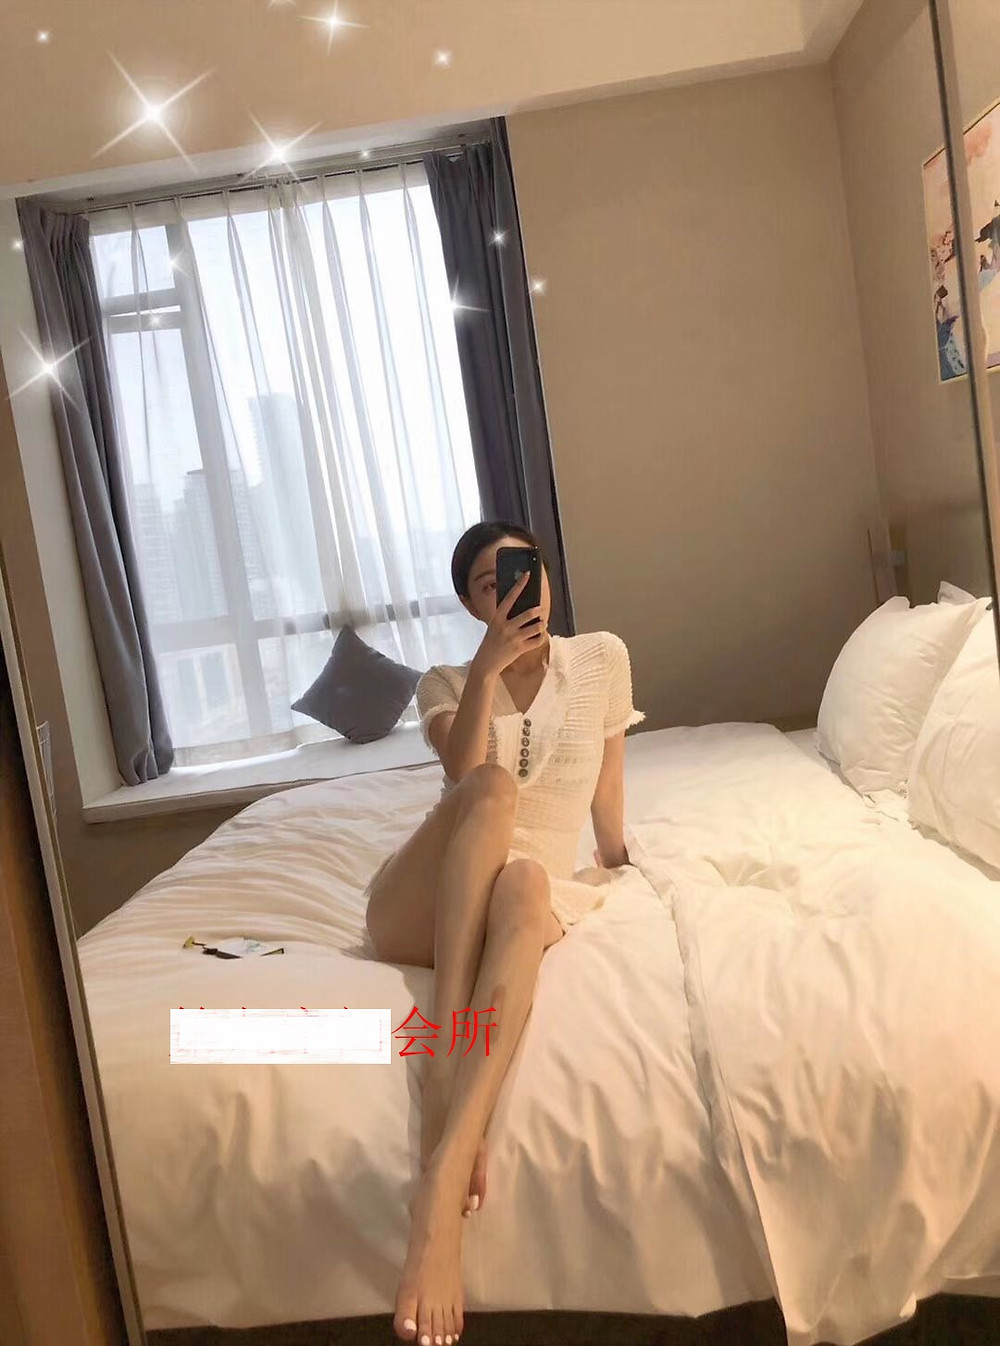 Femdom Thoughts: Are women really superior to men?  - CNQueens - Chinese SM Femdom Resource, Worship beautiful Chinese women, gain access to Chinese SM Femdom videos, pictures and contact details of queens (dommes) all over China 全国女s女神女王SM调教资源,包括视频,照片和全国各地女王的联系方式